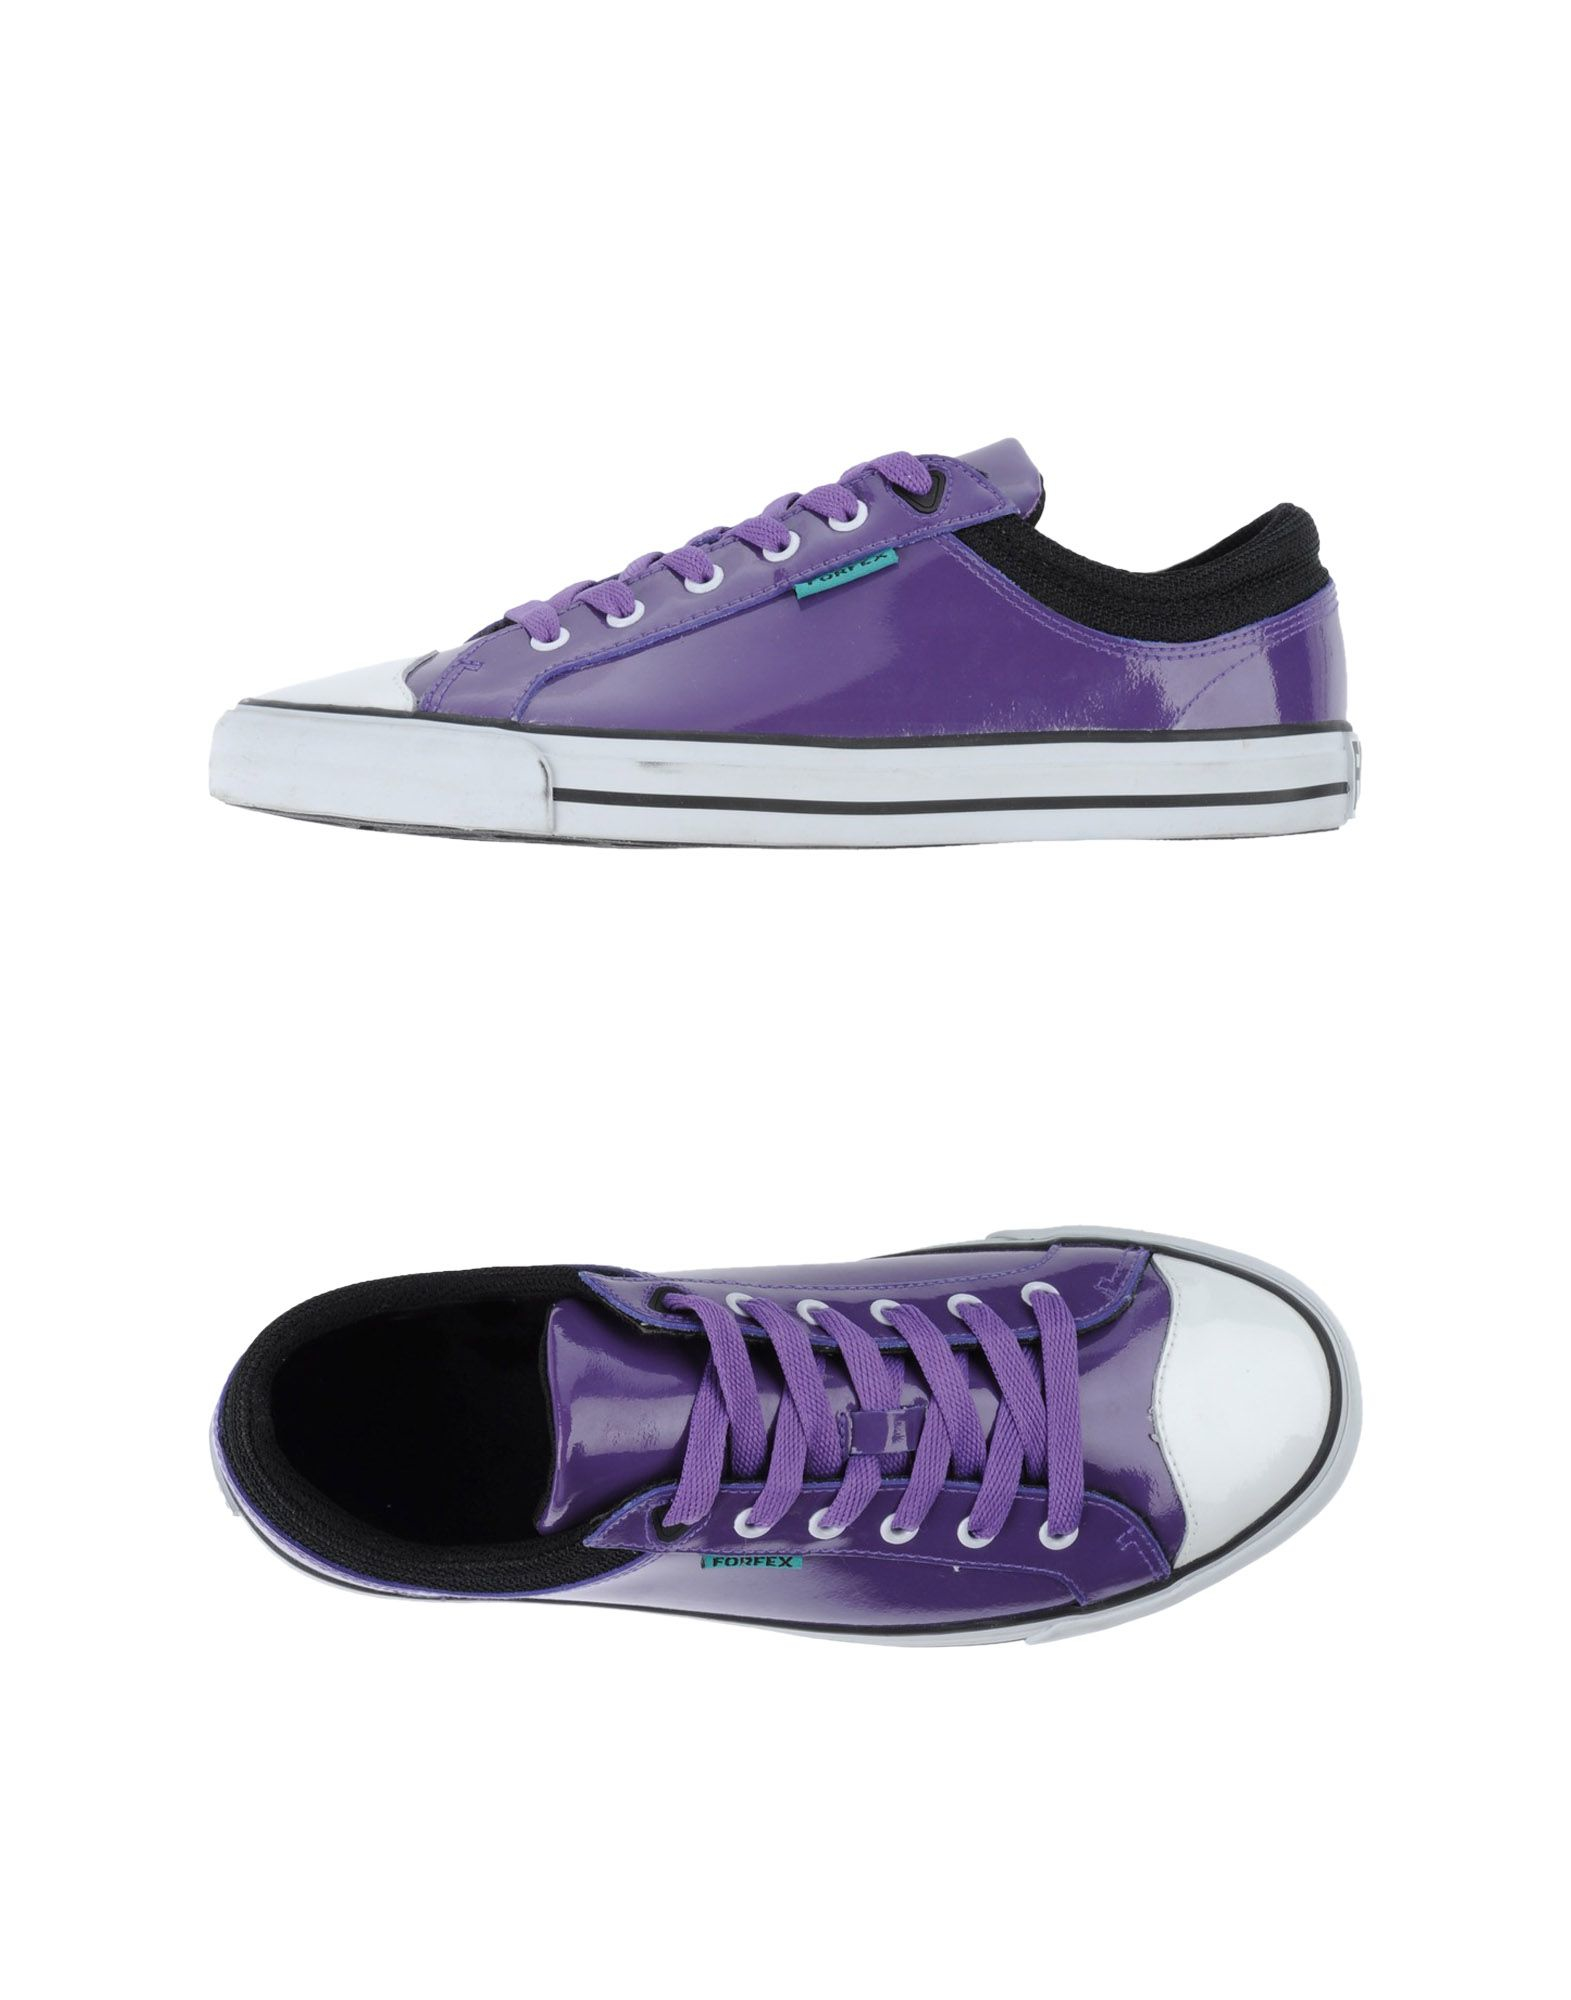 Forfex Shoes Uk